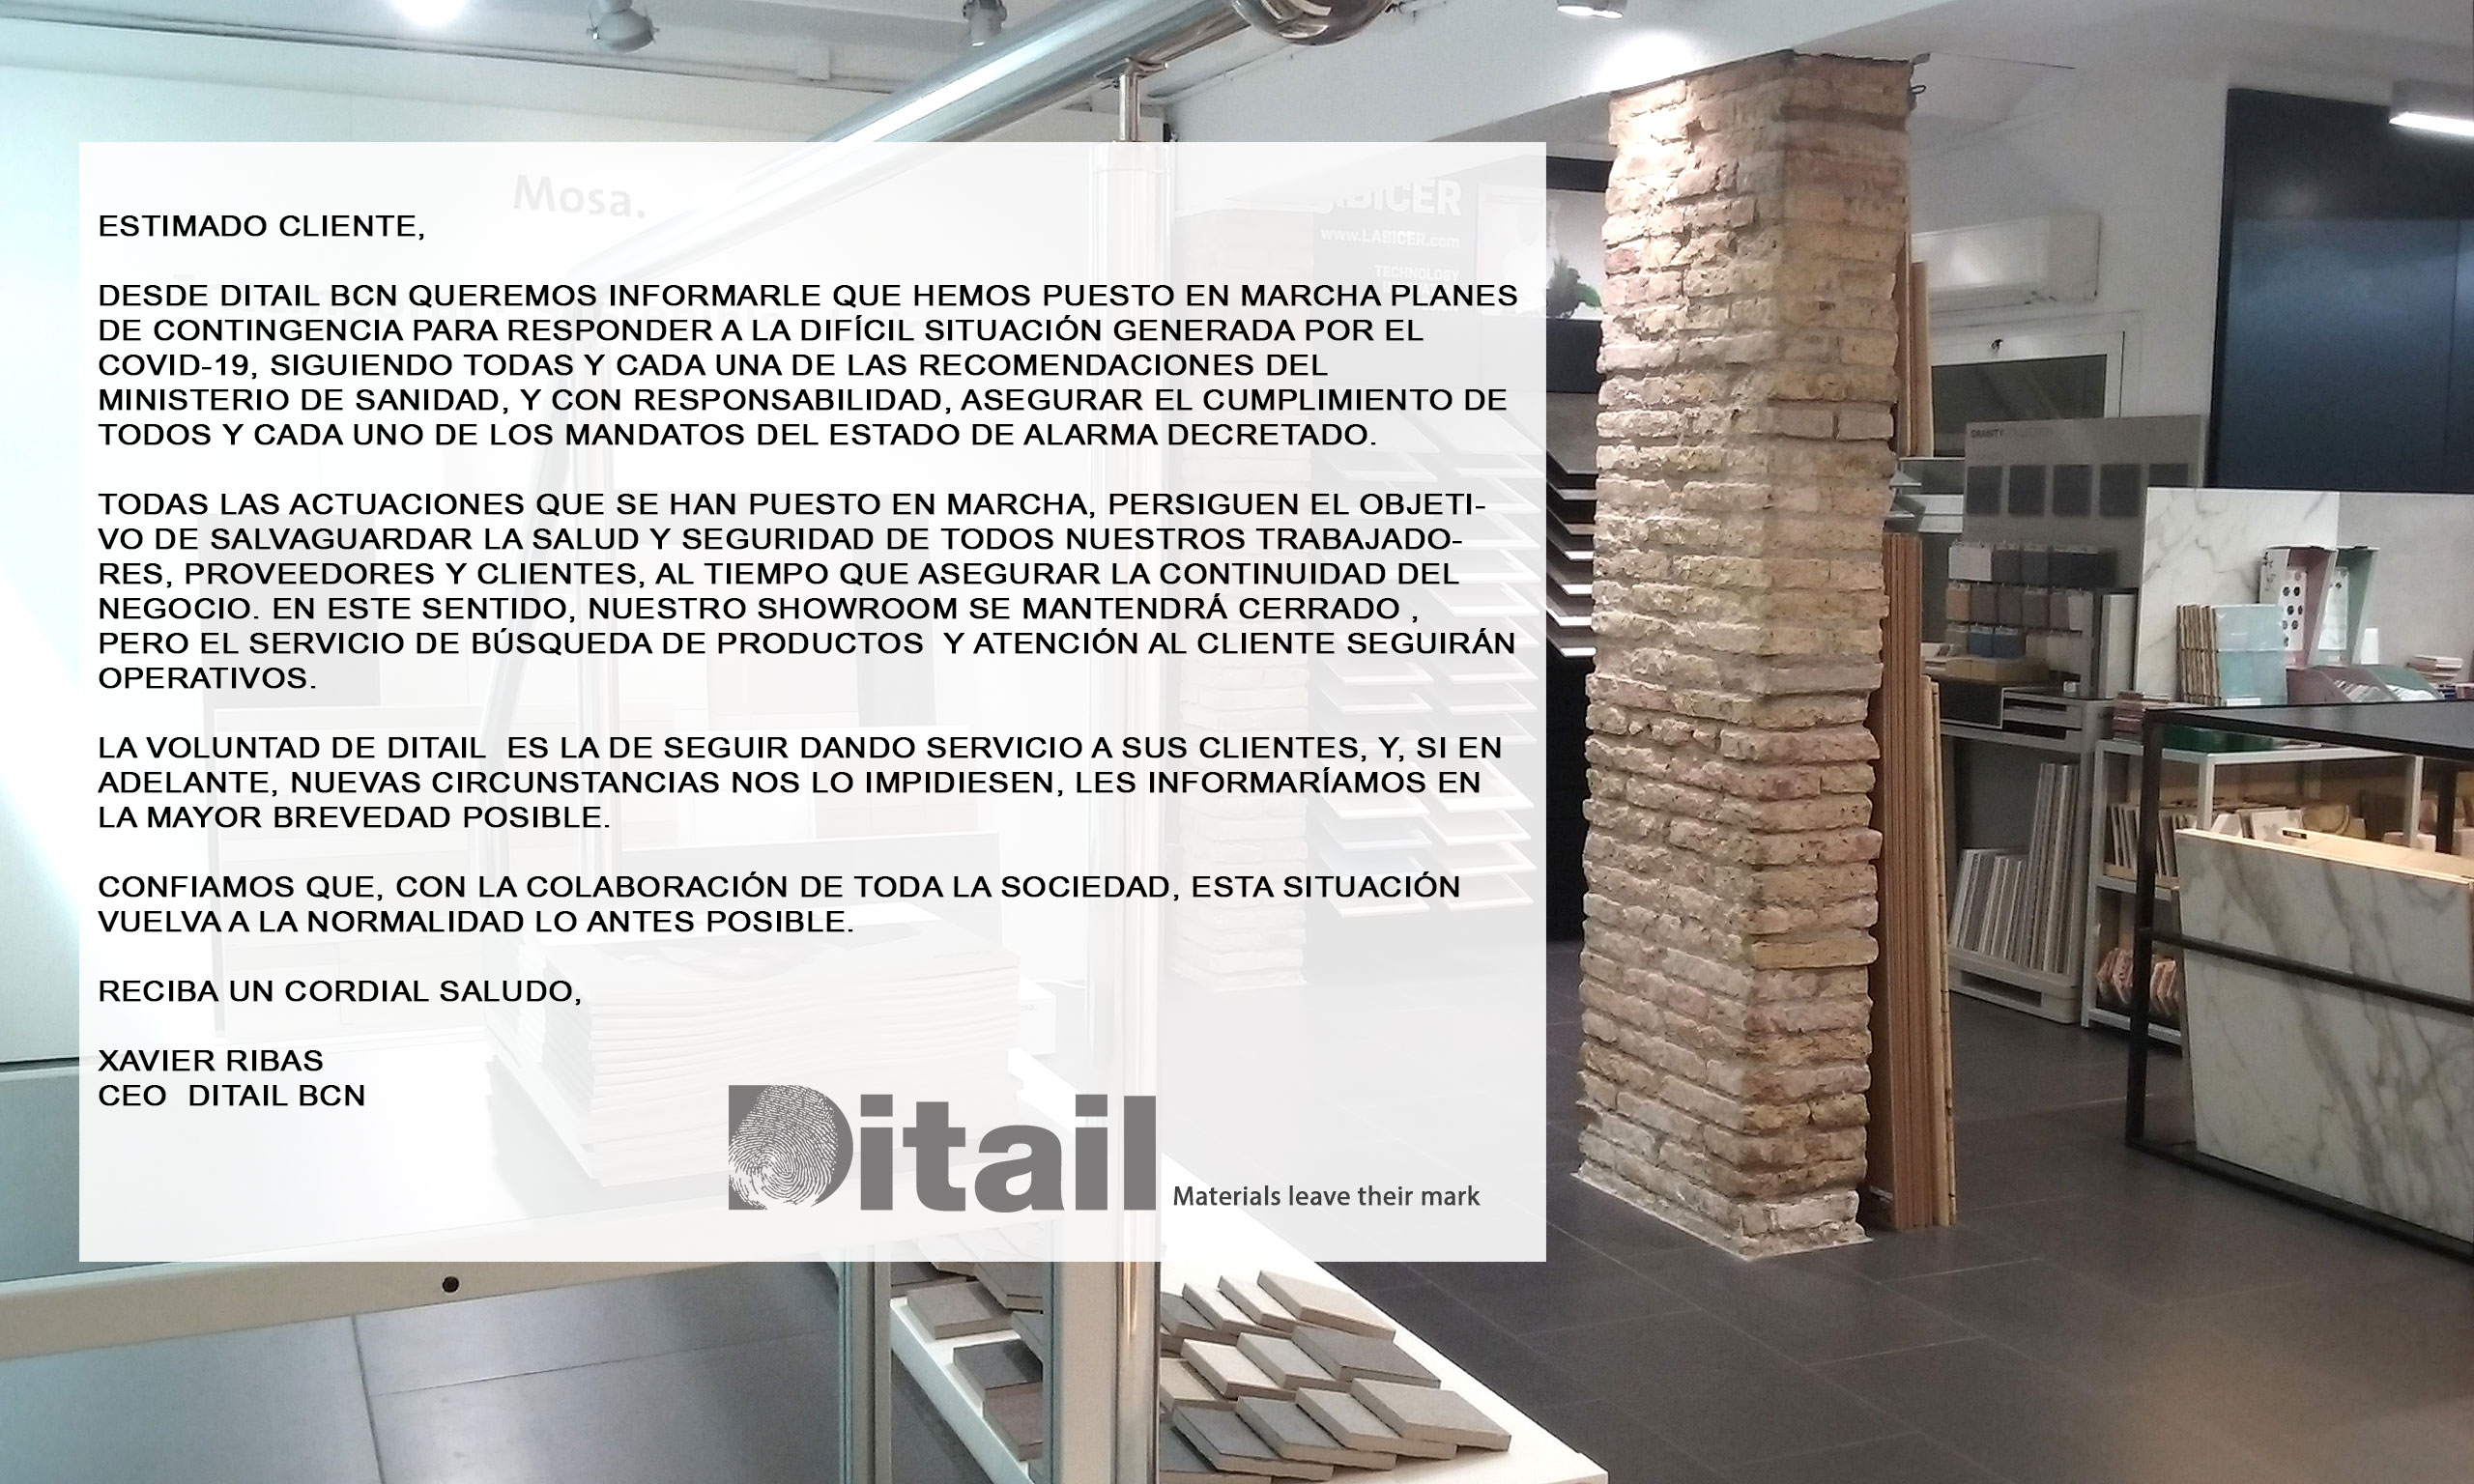 ditail-materiales-barcelona-comunicado